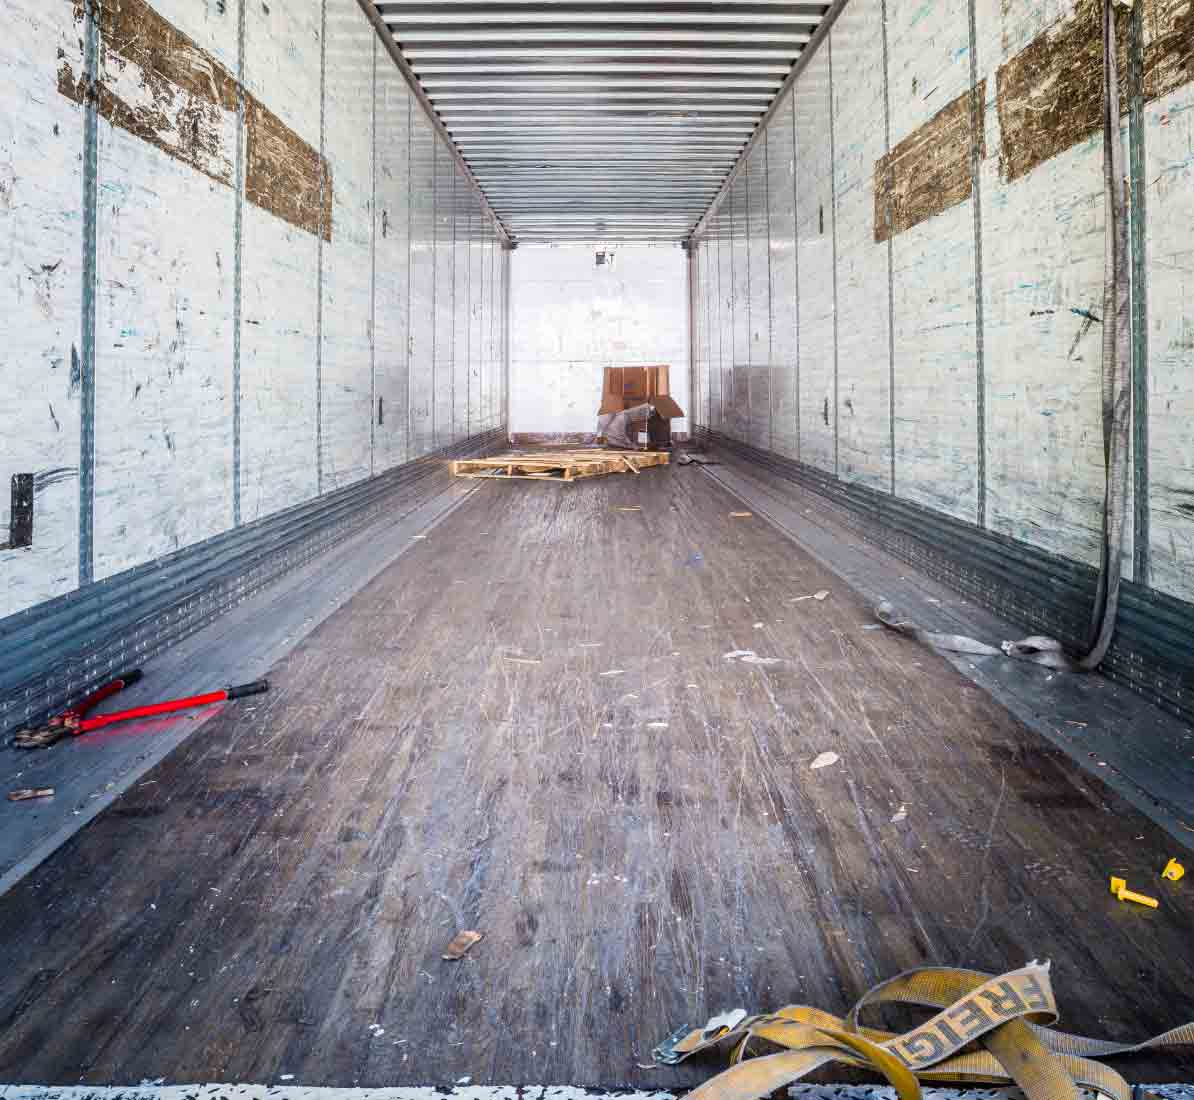 Empty freight container after delivering packages